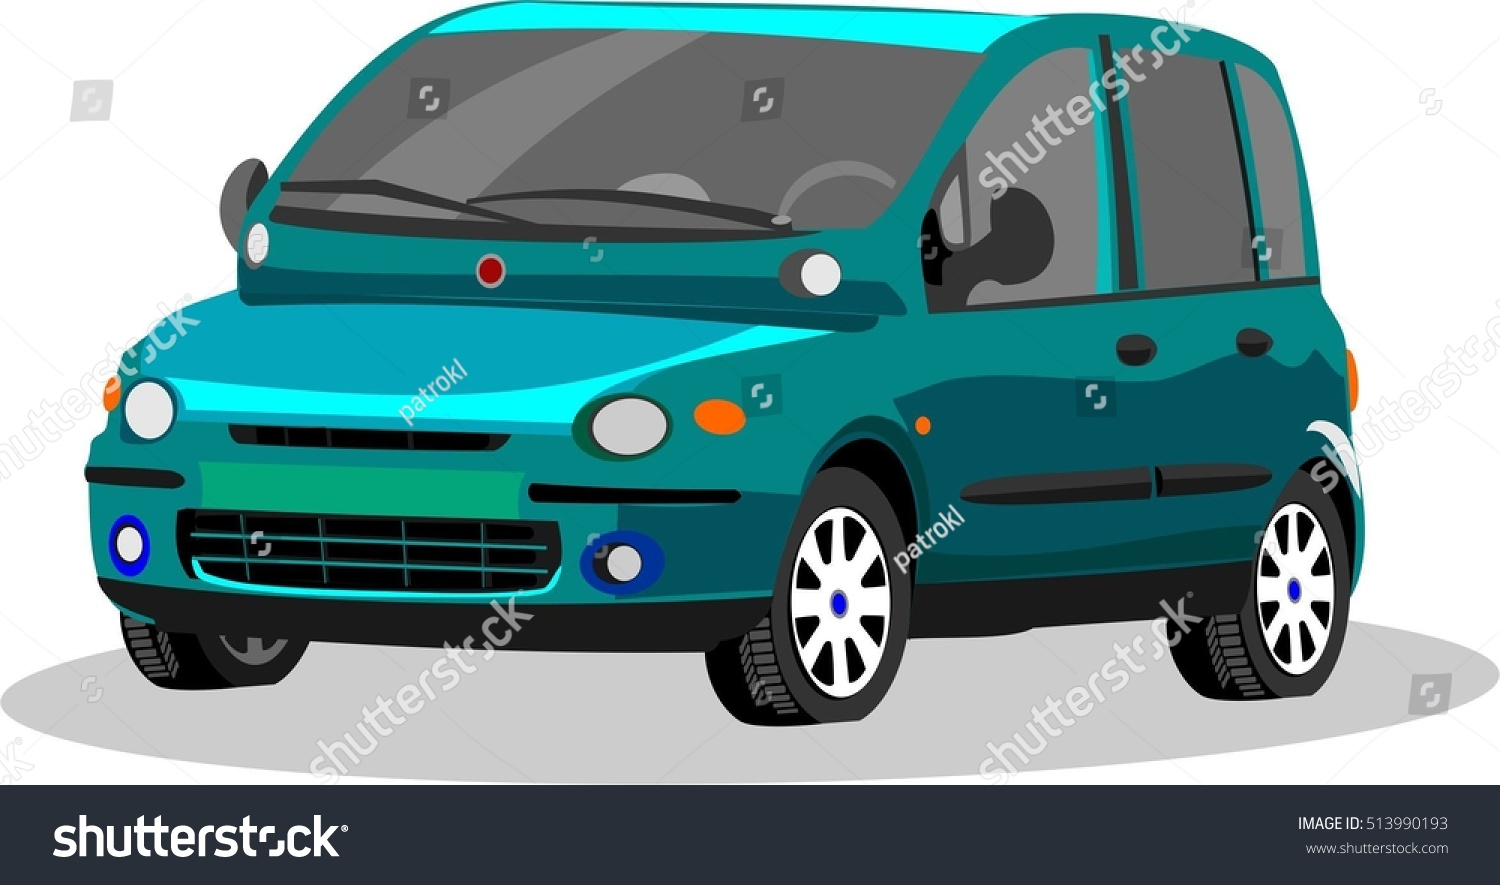 fiat multipla gumtree with Fiat Multipla Wallpaper on Fiat Multipla Wallpaper likewise New Fiat Seicento Dublin likewise Fiat Multipla Wallpaper moreover C erizar Fiat Dobl C3 B3 together with 1179606786.